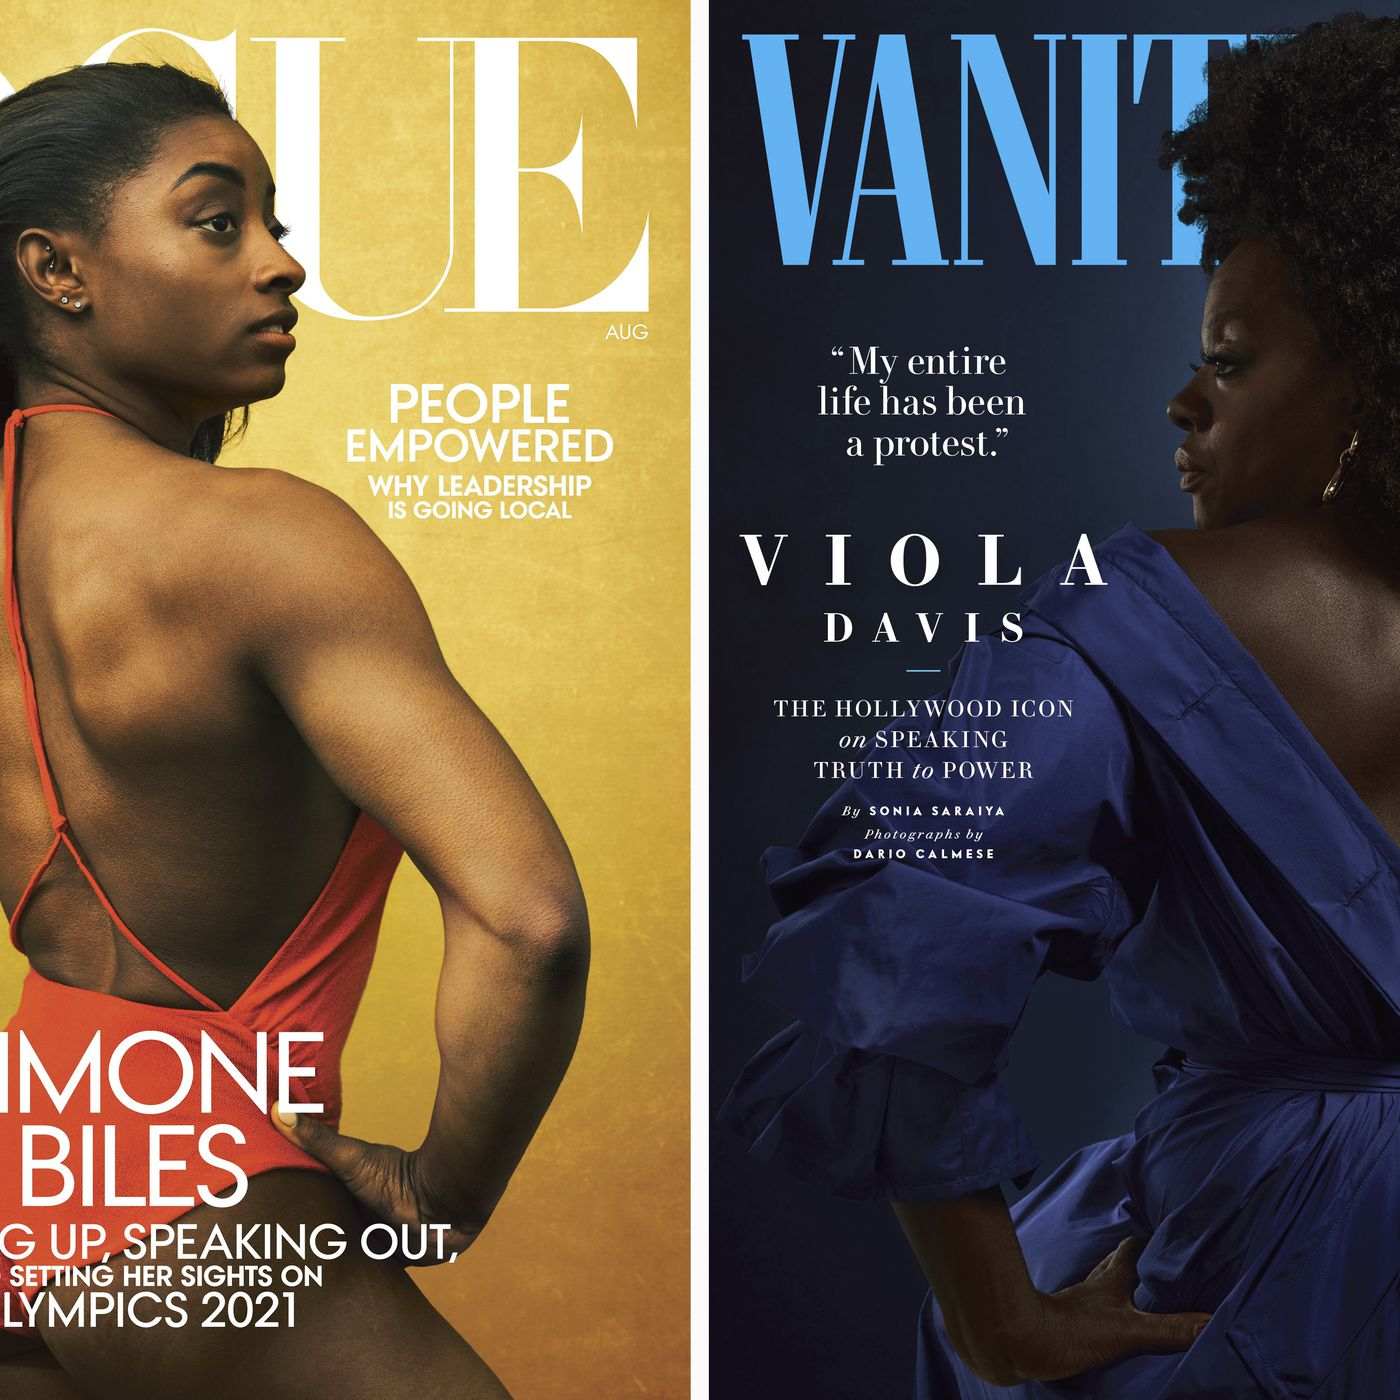 Vogue And Vanity Fair Covers Featuring Simone Biles And Viola Davis Draw Criticism Vox